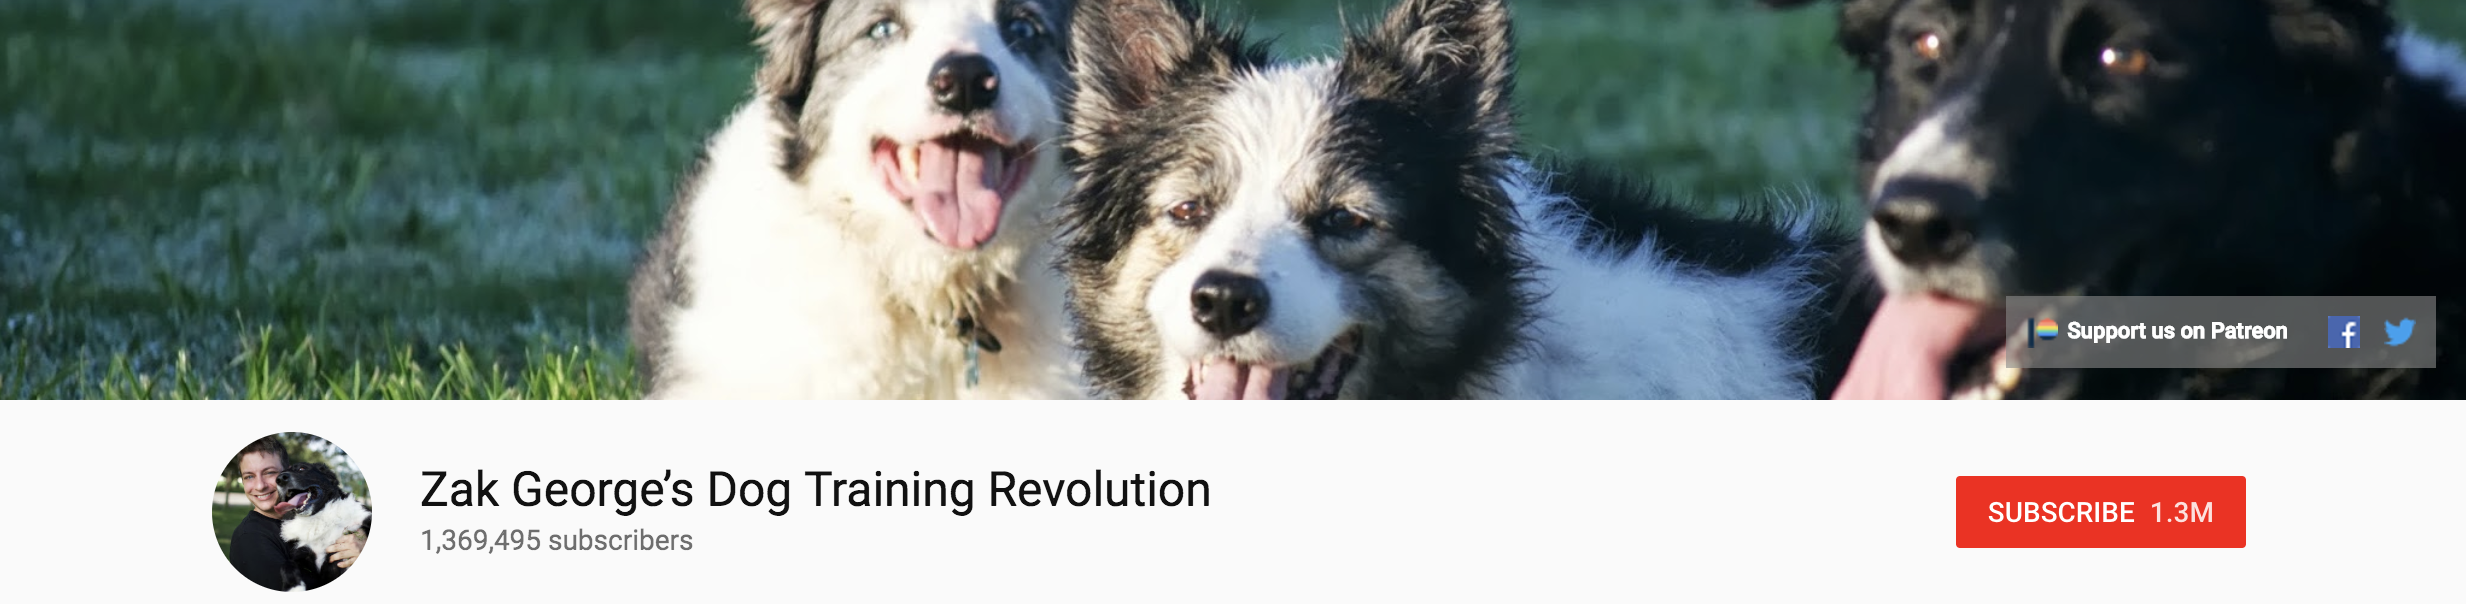 youtube-banner-without-text